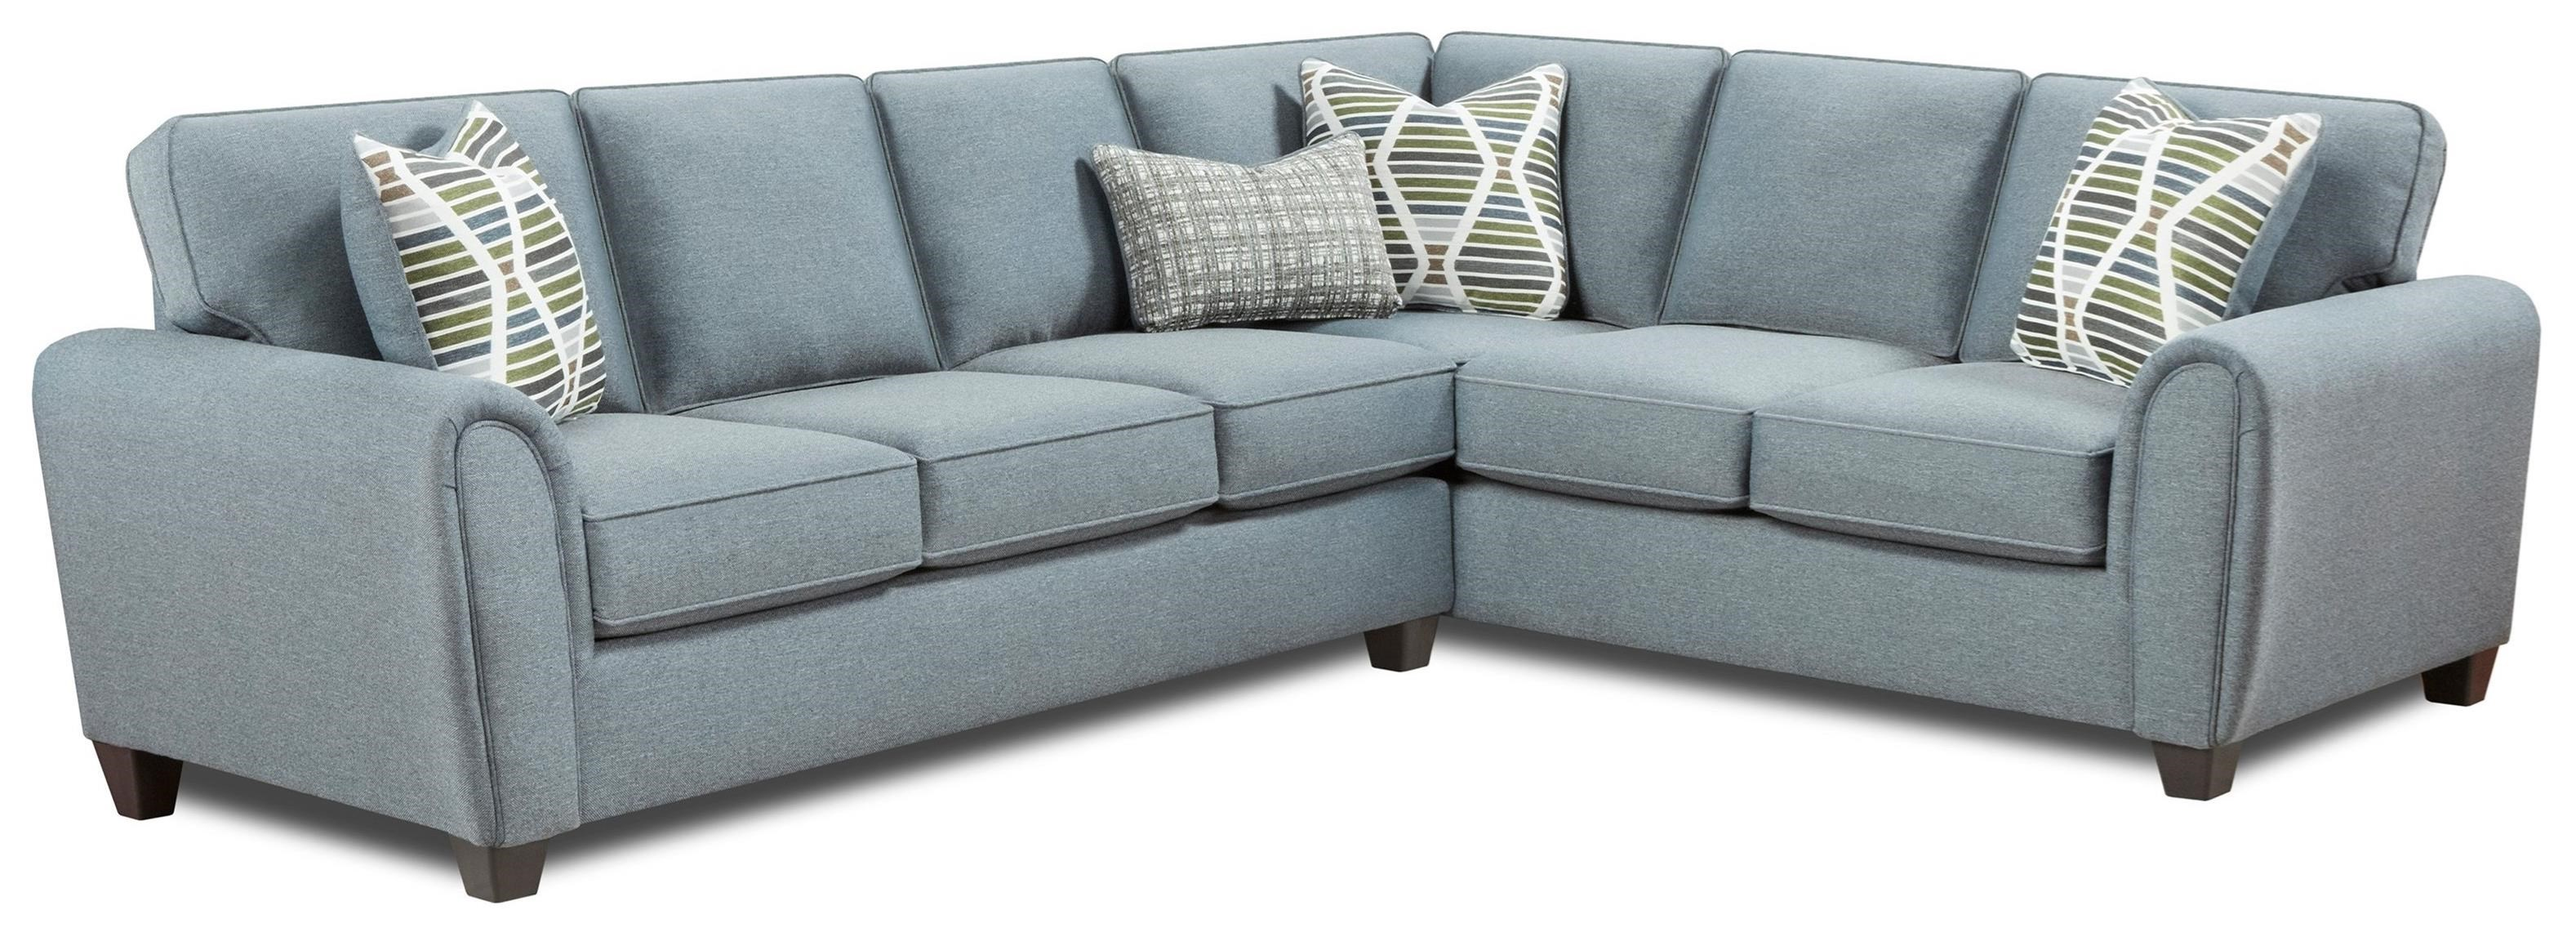 49-00 2-Piece L-Shape Sectional by Fusion Furniture at Furniture Superstore - Rochester, MN